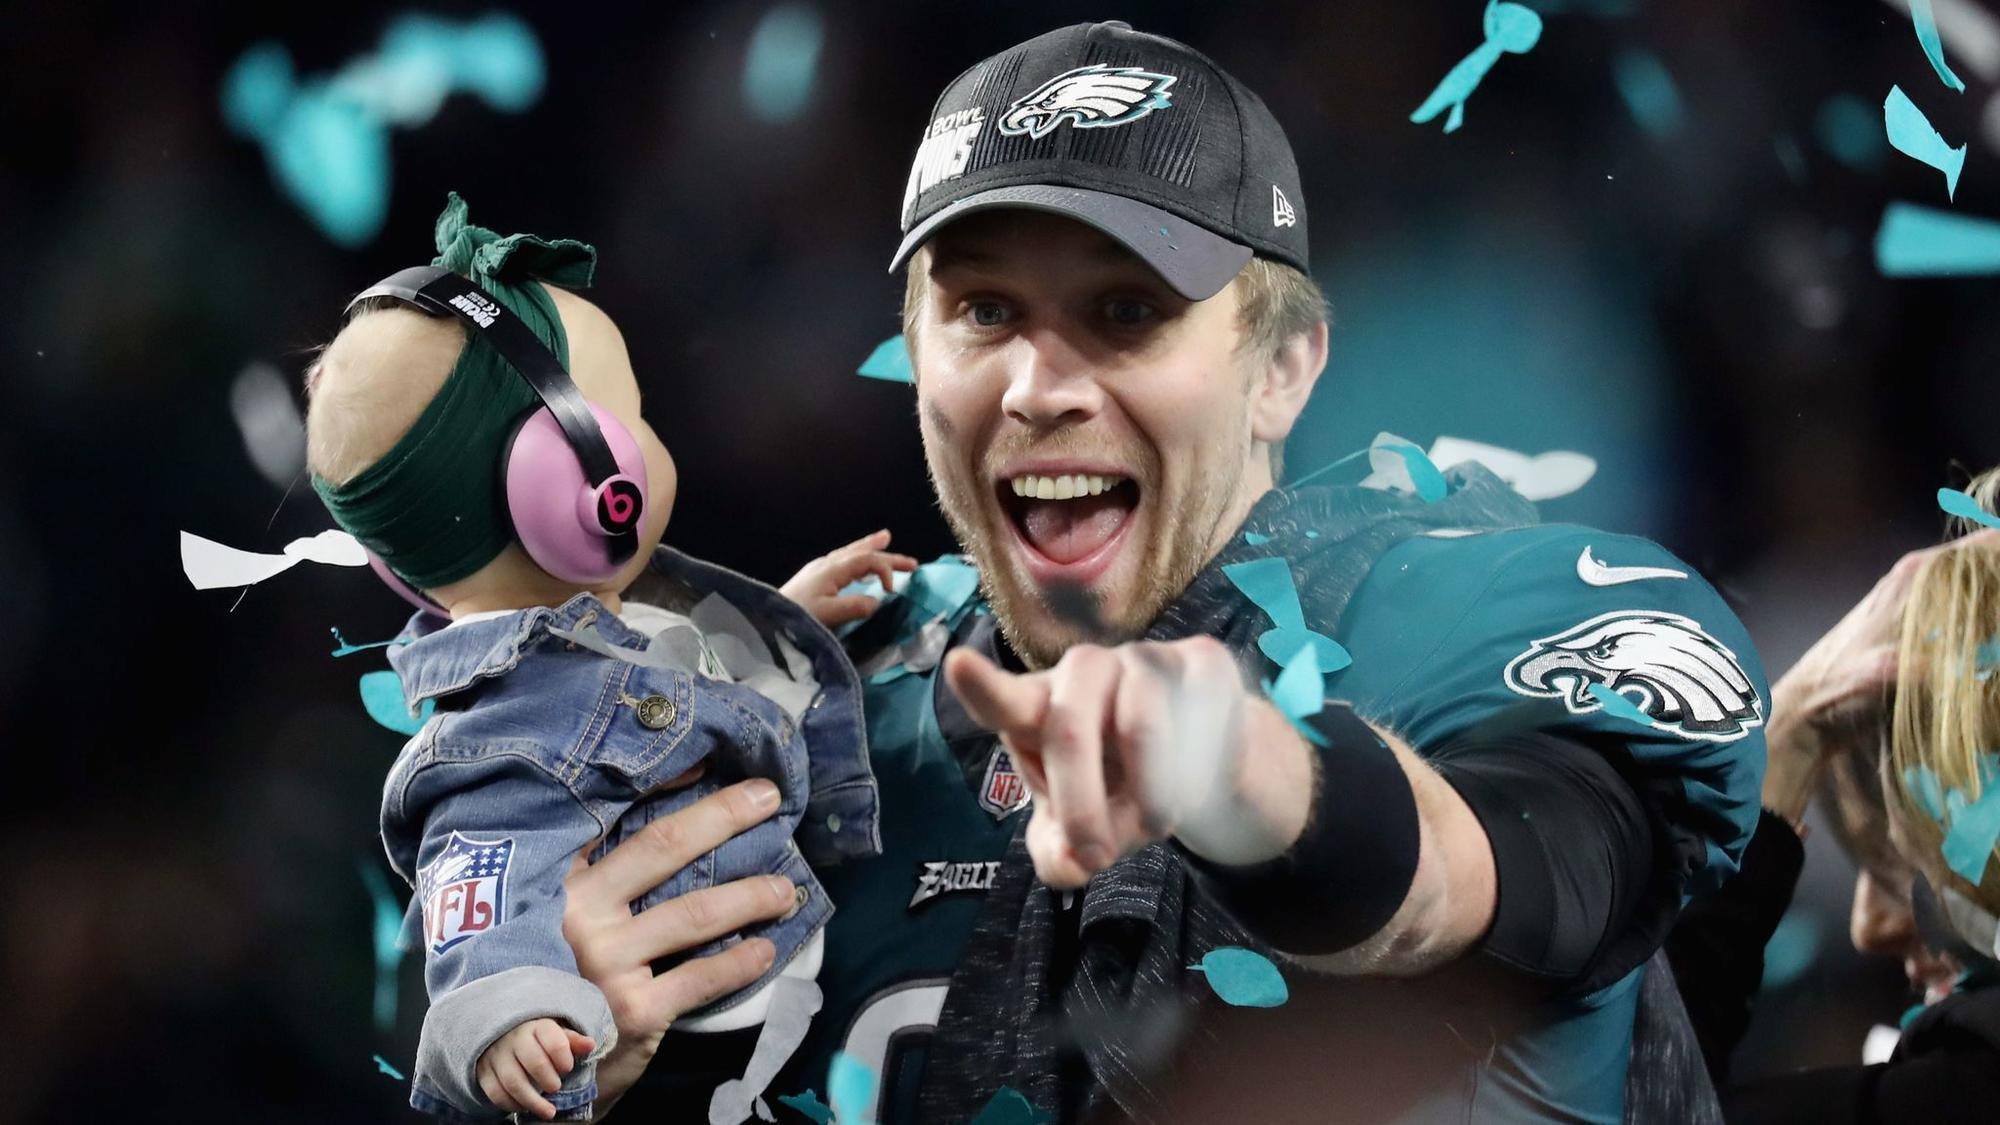 nick foles a super bowl mvp and unlikely folk hero in philly